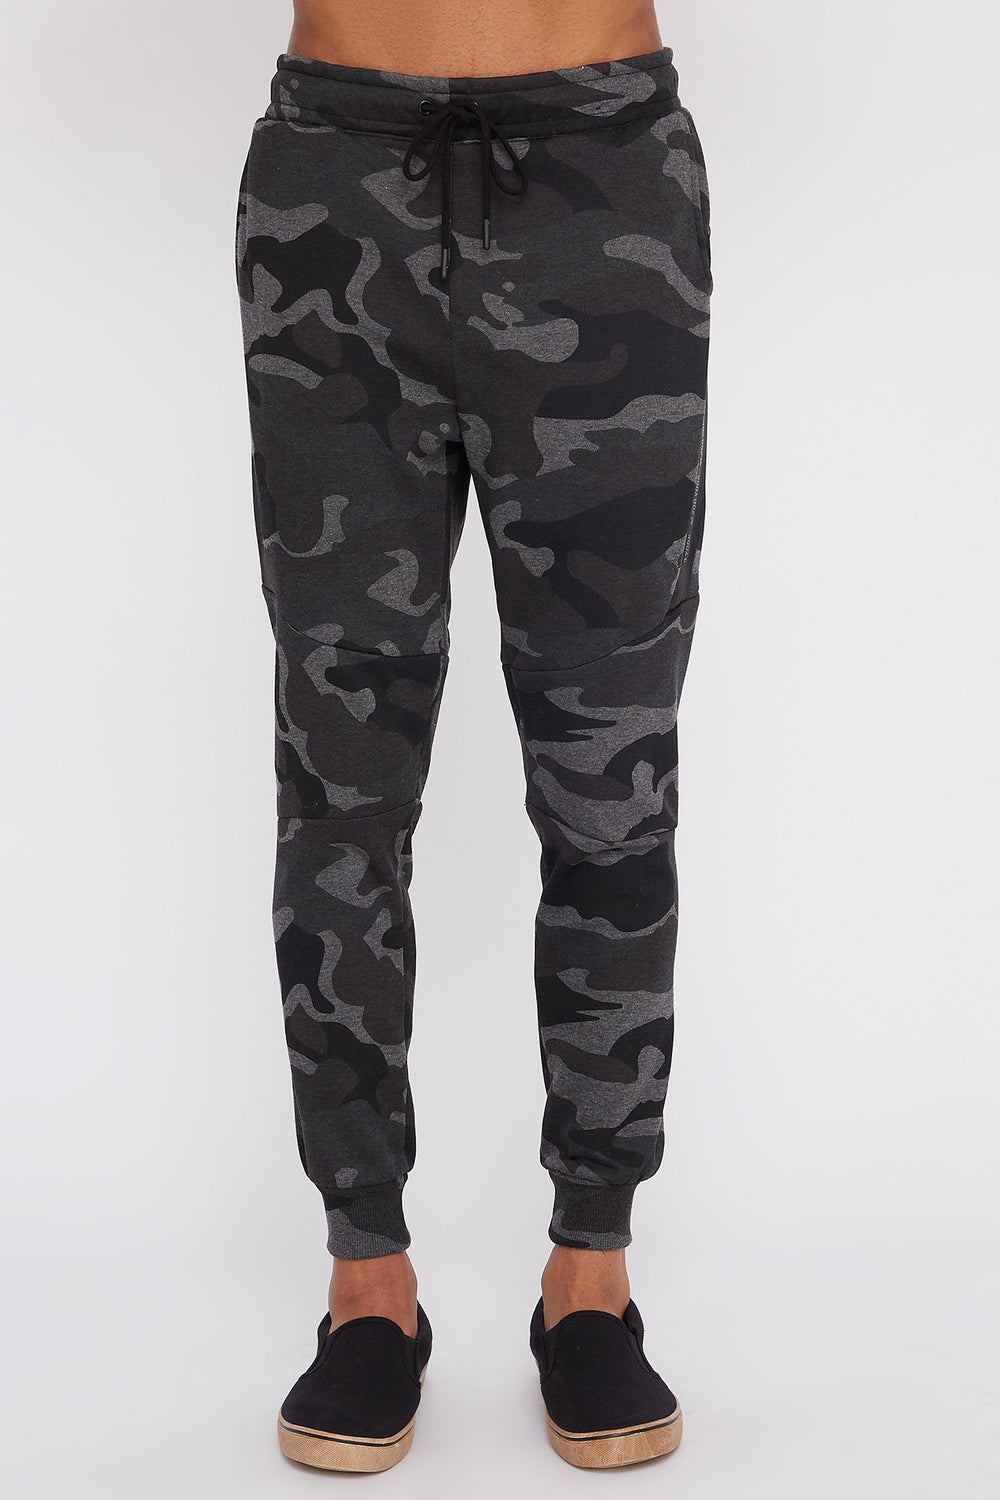 Zoo York Mens Camo Side Zipper Jogger Black with White